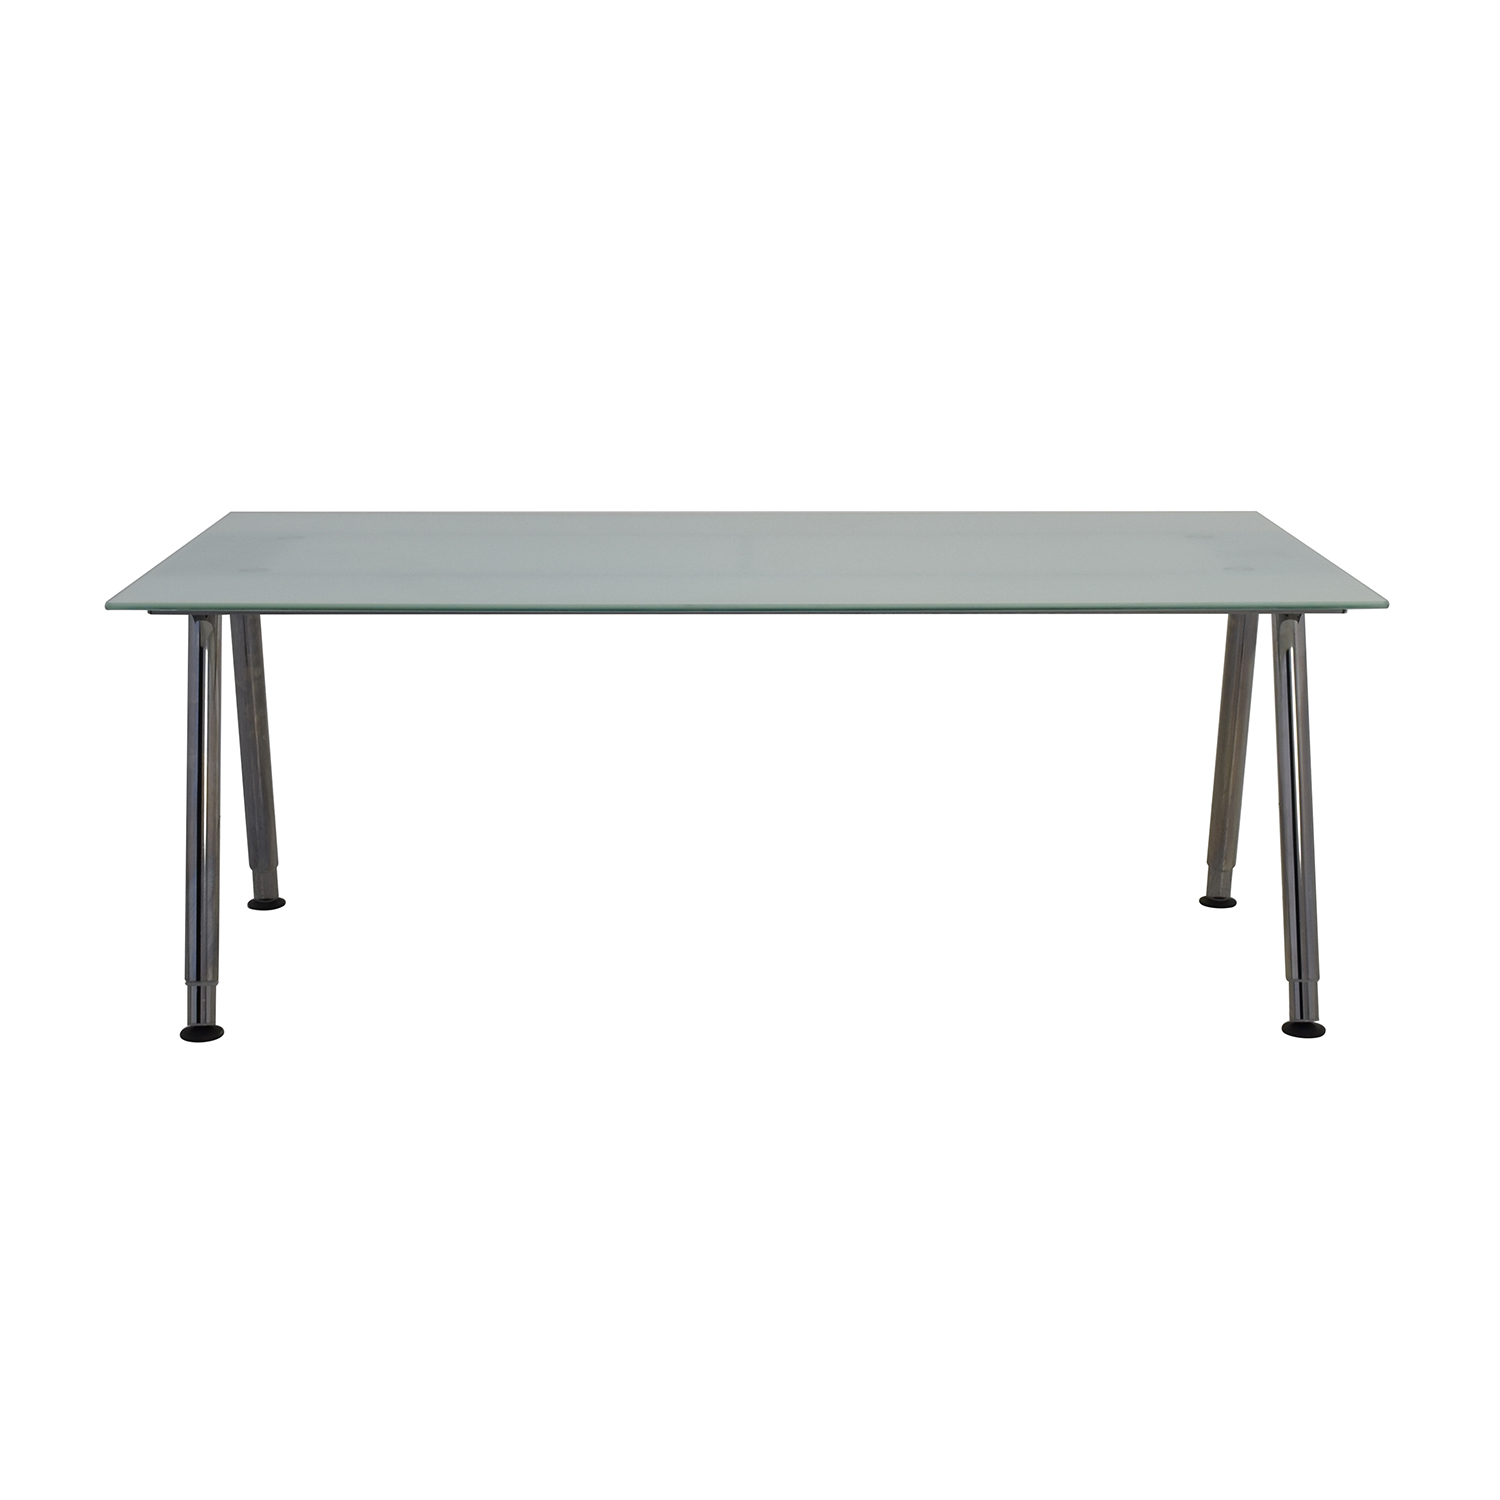 69 off ikea ikea galant glass top desk tables - Glass office desk ikea ...